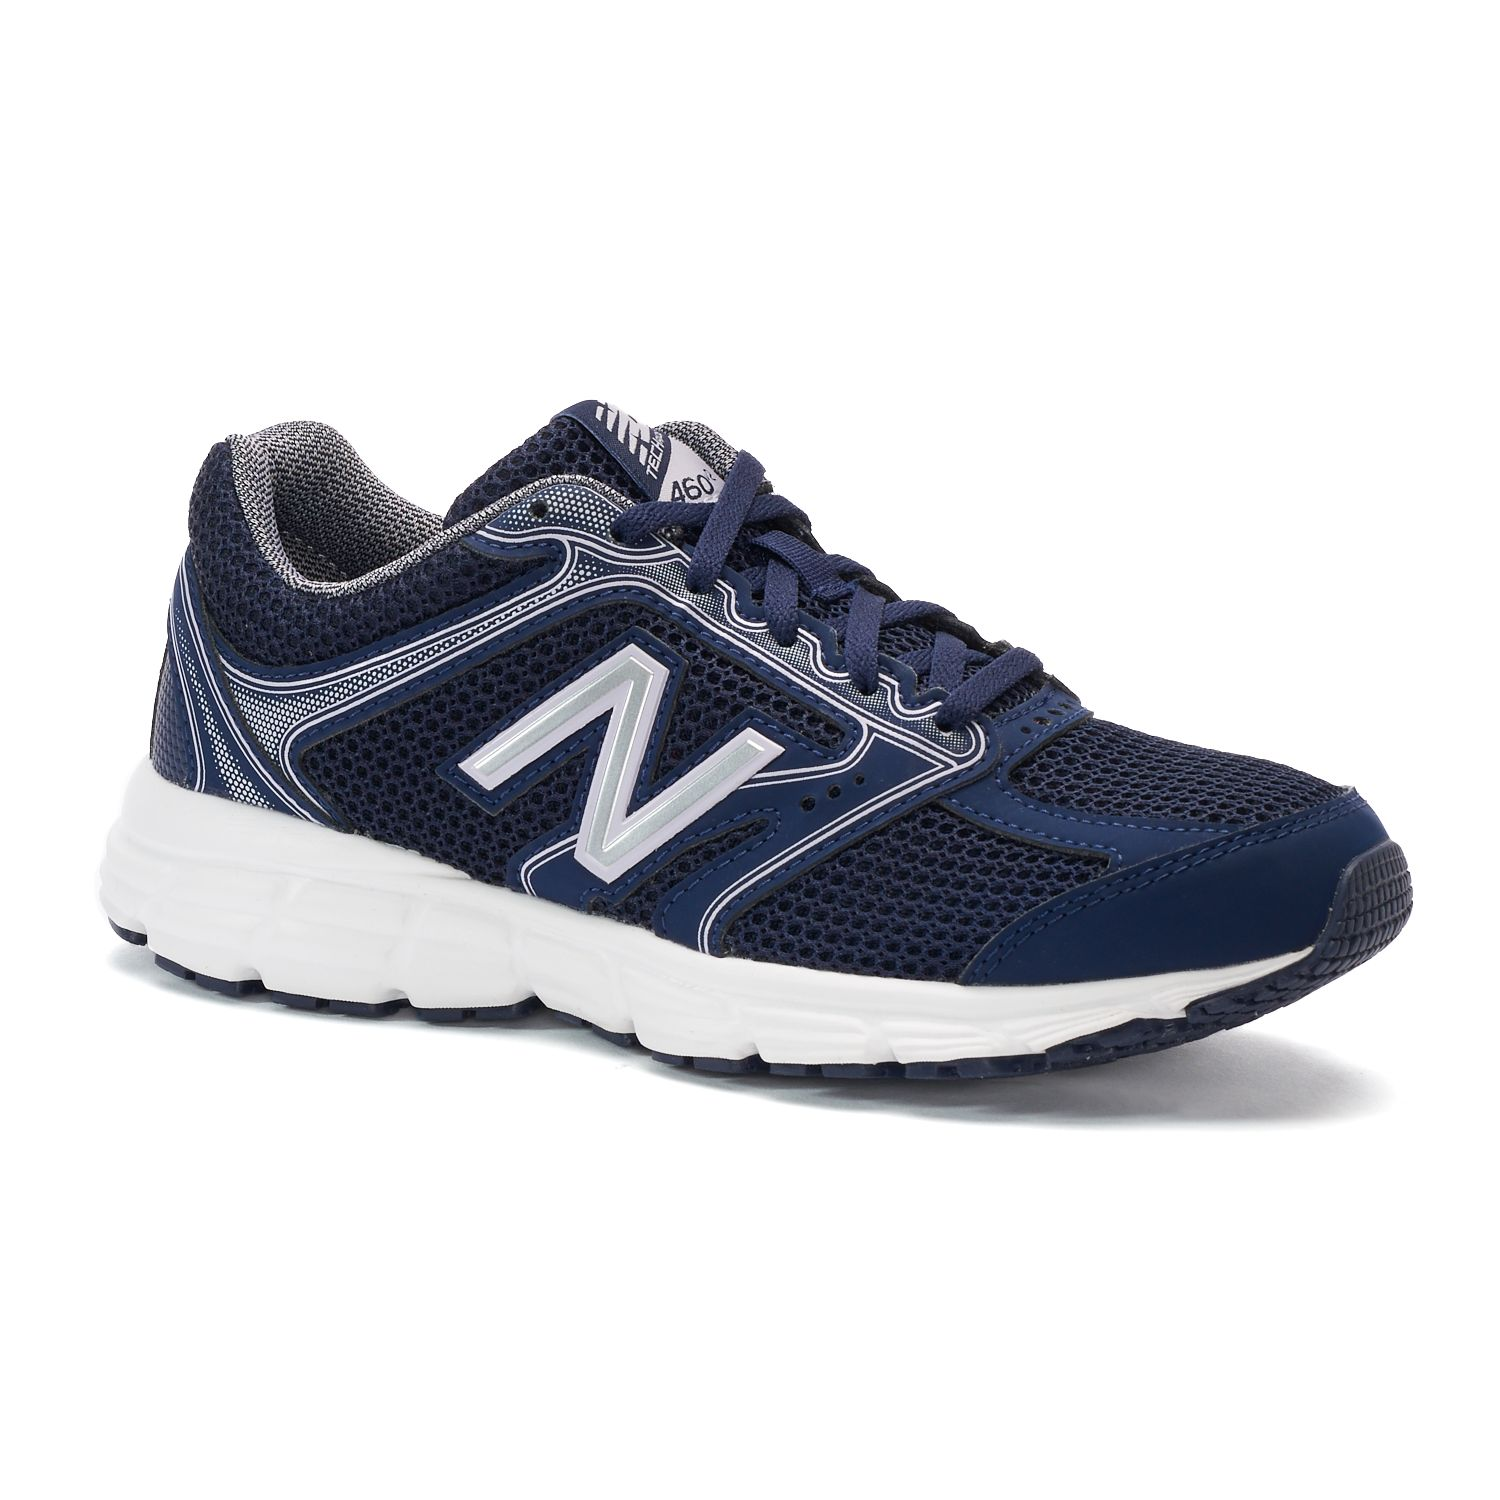 New Balance 460 v2 Women\u0027s Running Shoes